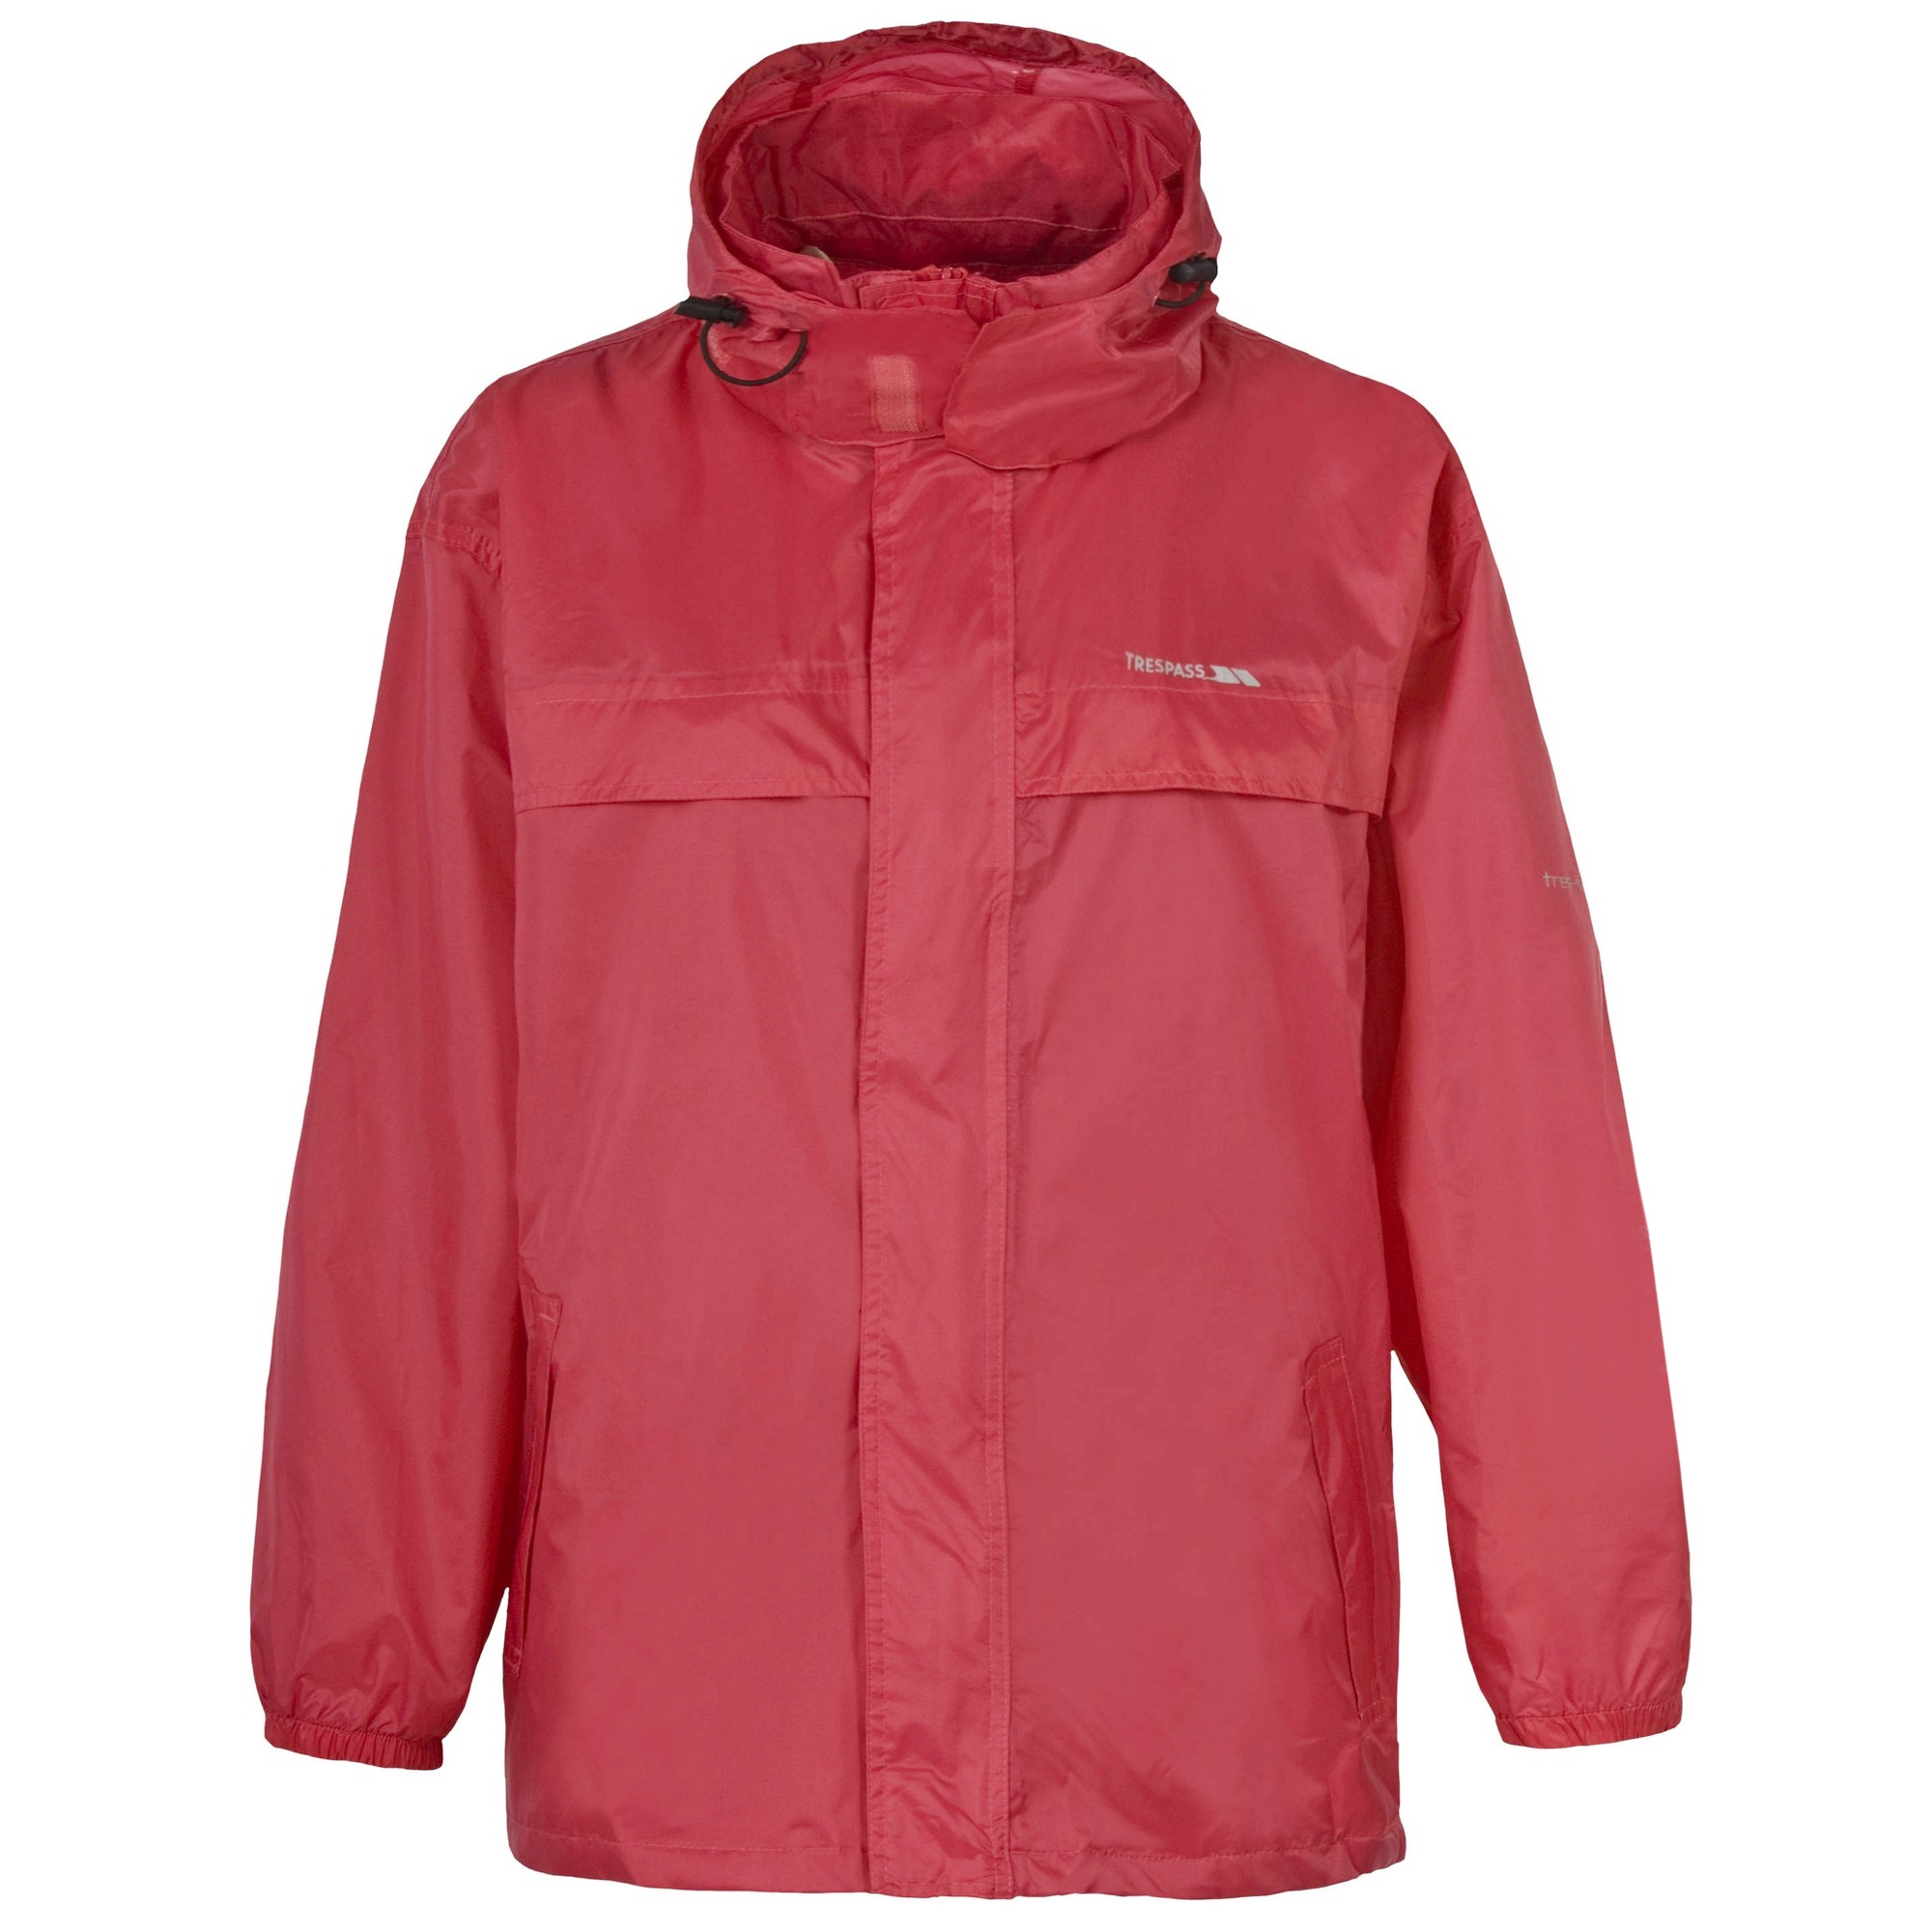 Waterproof Rain Jacket Women S